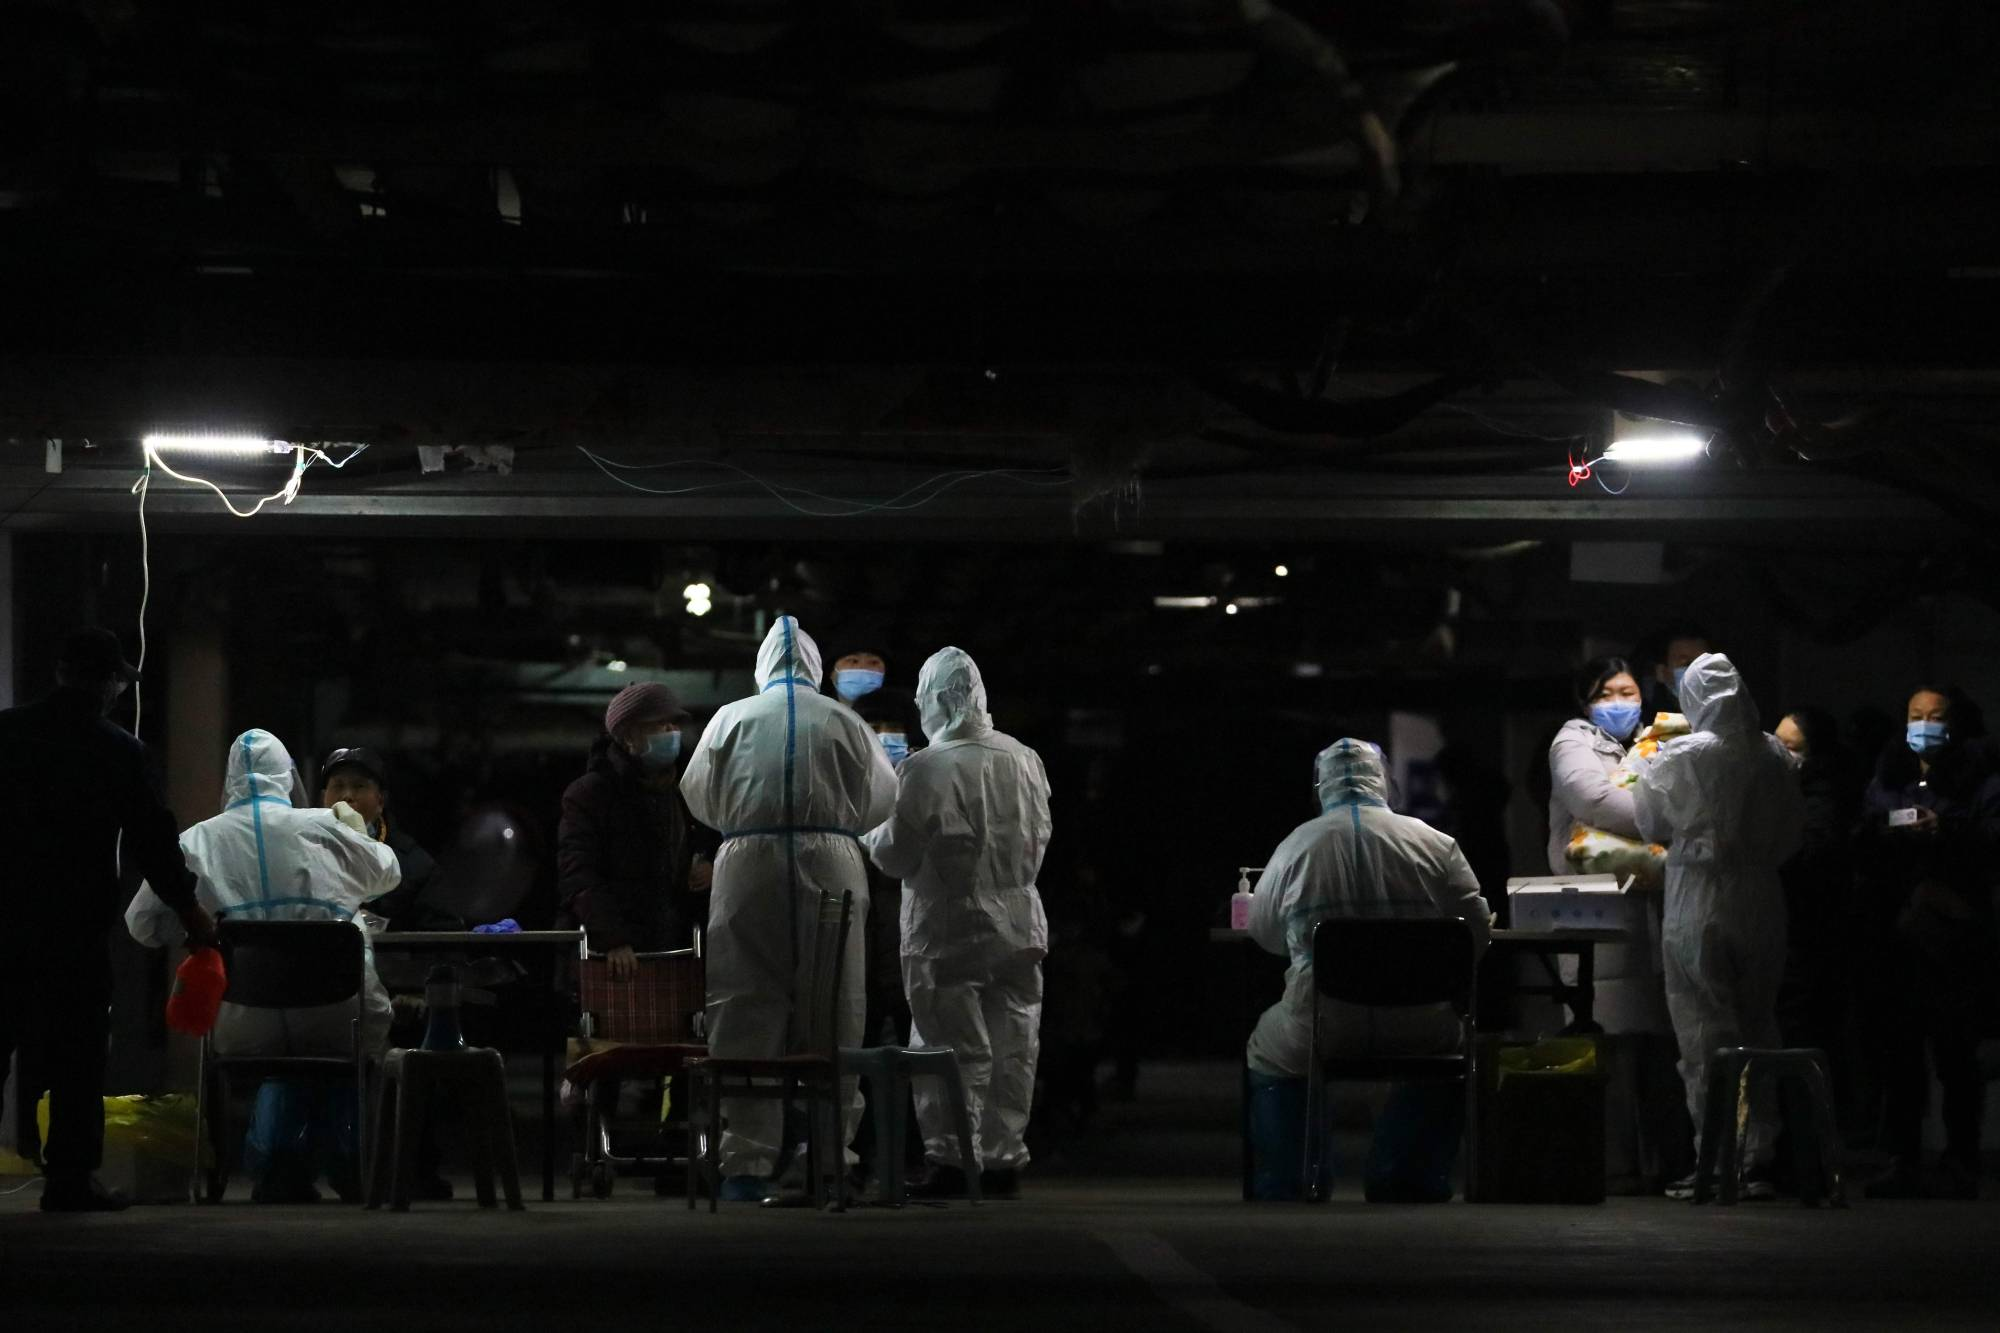 Residents undergo COVID-19 tests at the basement of a residential compound as part of a mass testing program following new cases of the virus emerging in Shijiazhuang in in central China's Hebei province.   | AFP-JIJI